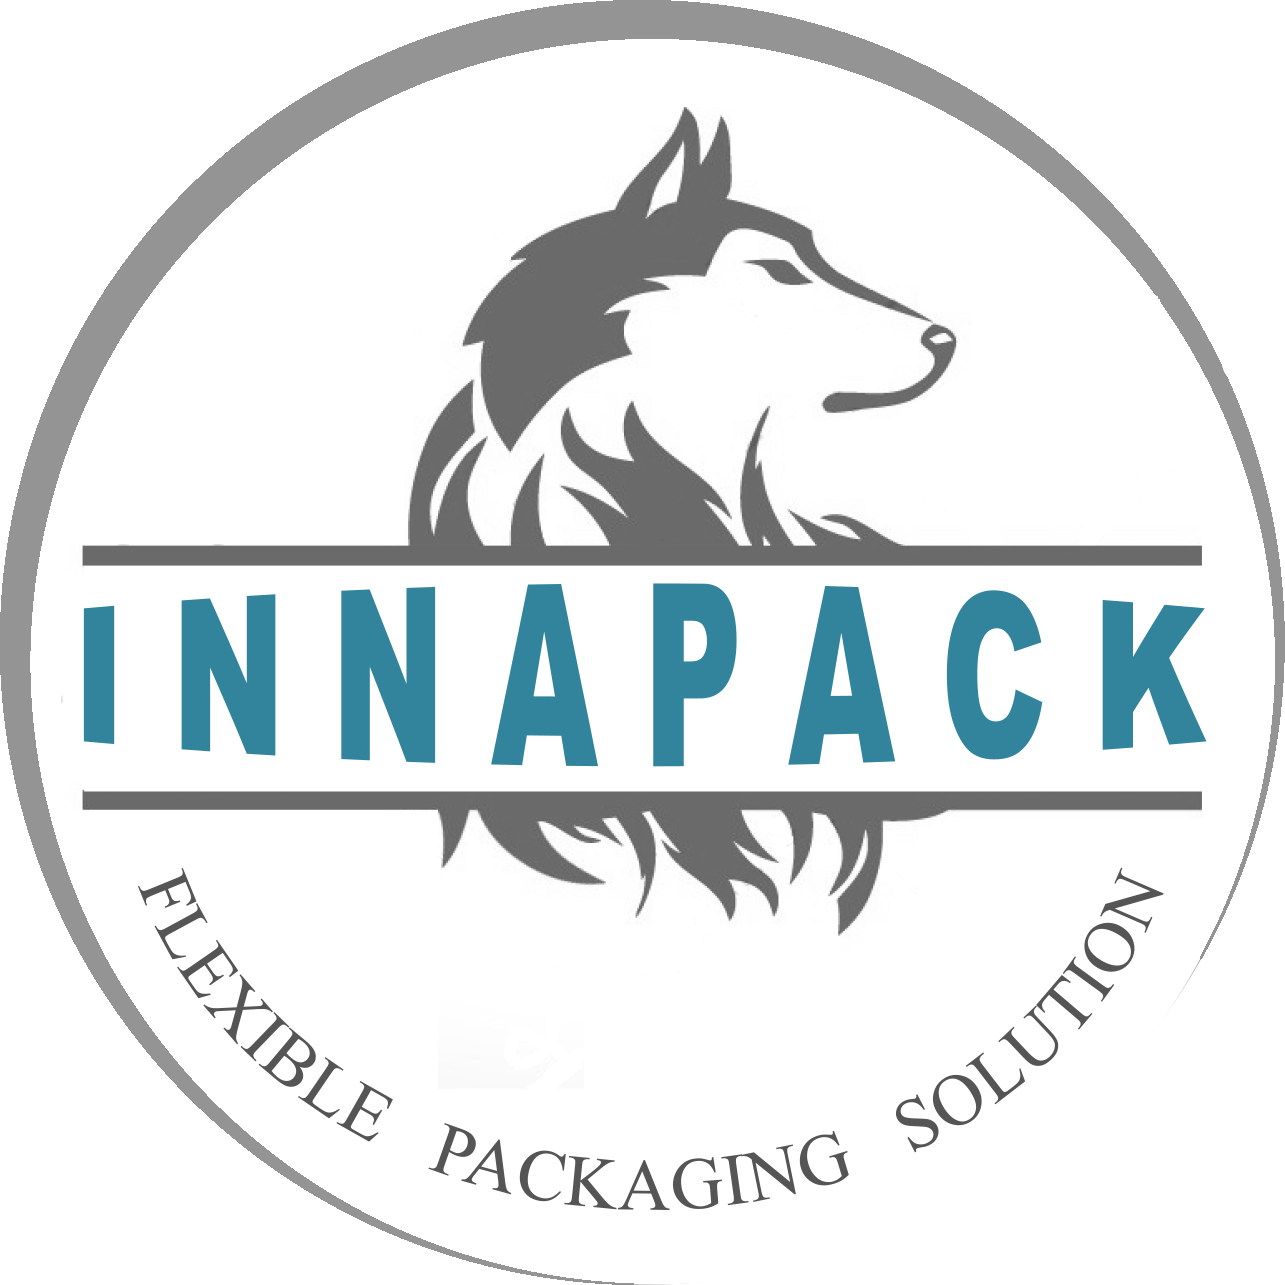 INNAPACK - Flexible Packaging Solutions in Indonesia